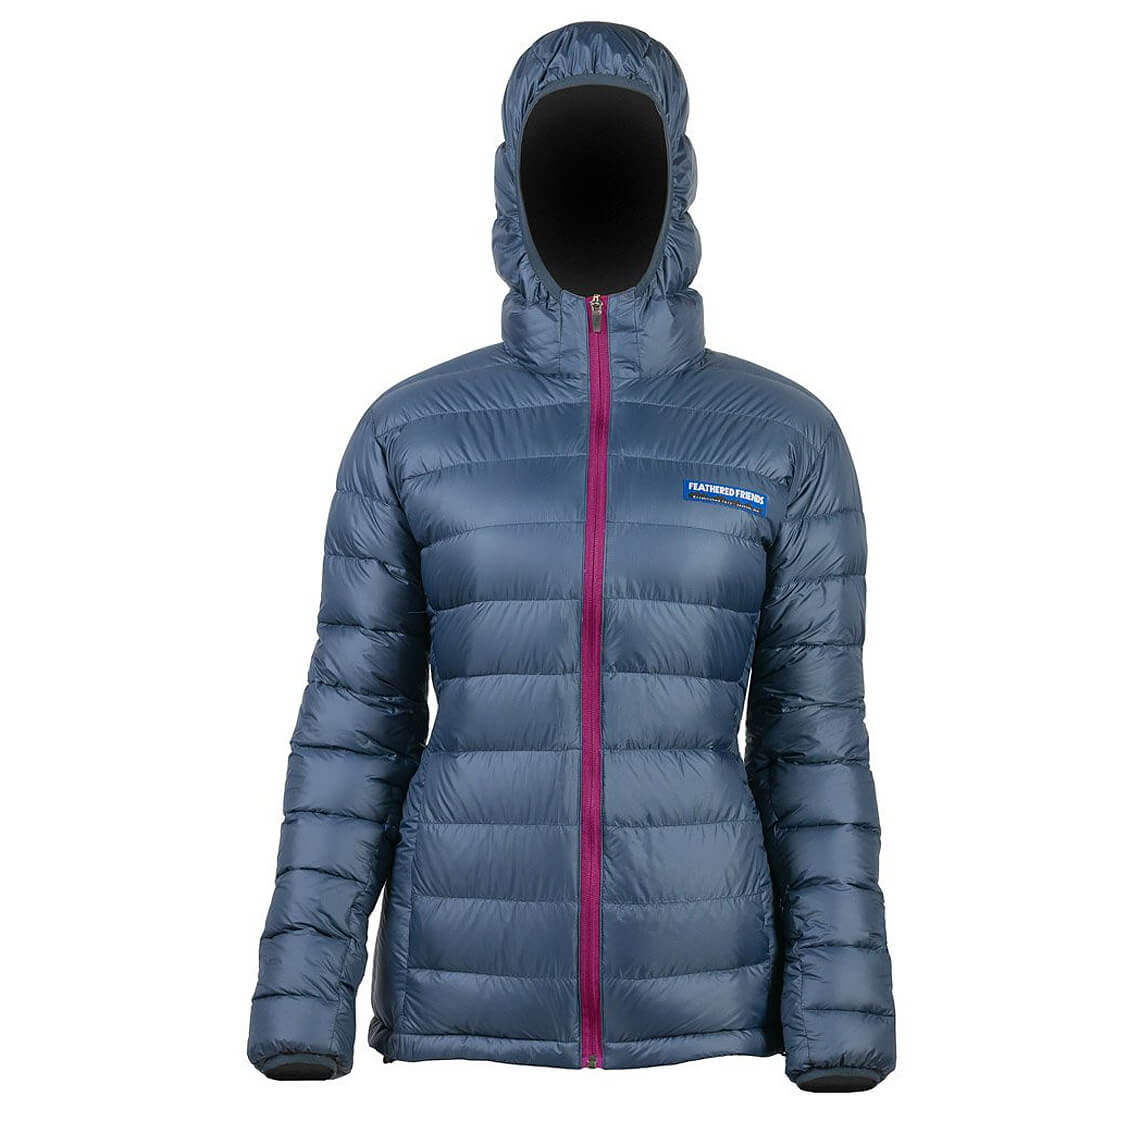 Feathered Friends Eos Down Jacket